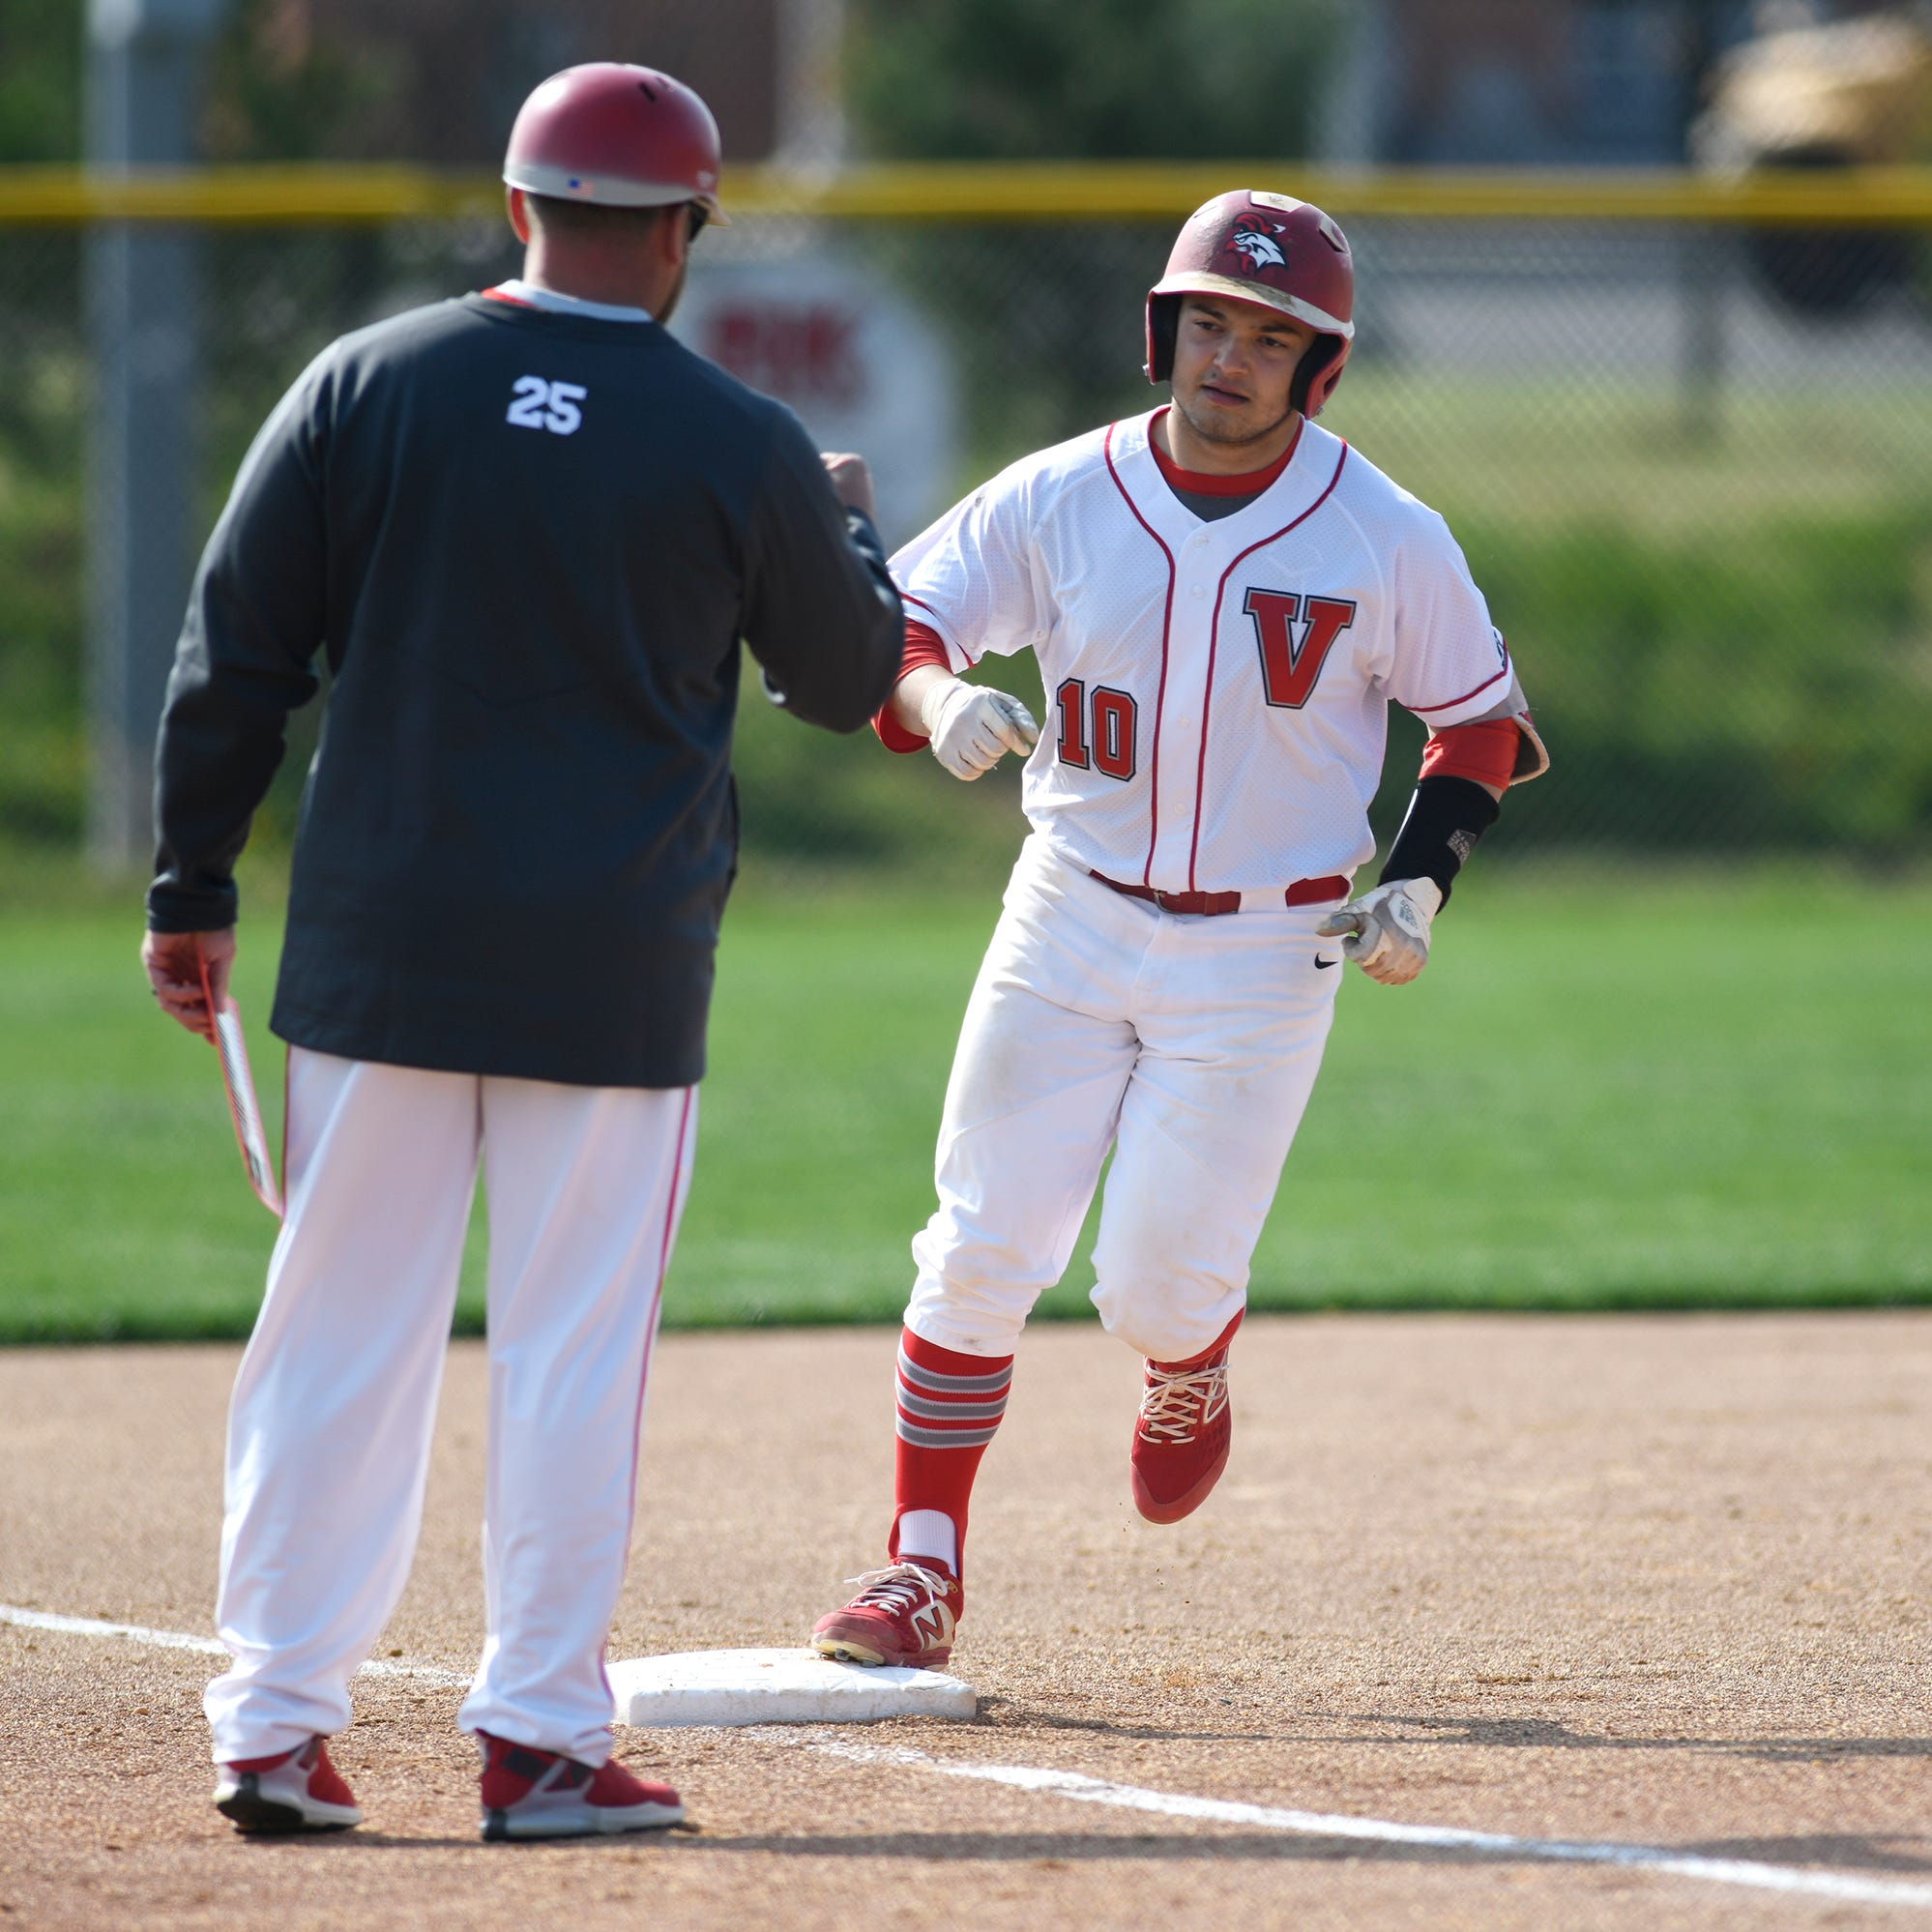 H.S. Baseball: Vineland gets boost from return of senior Hector Perez